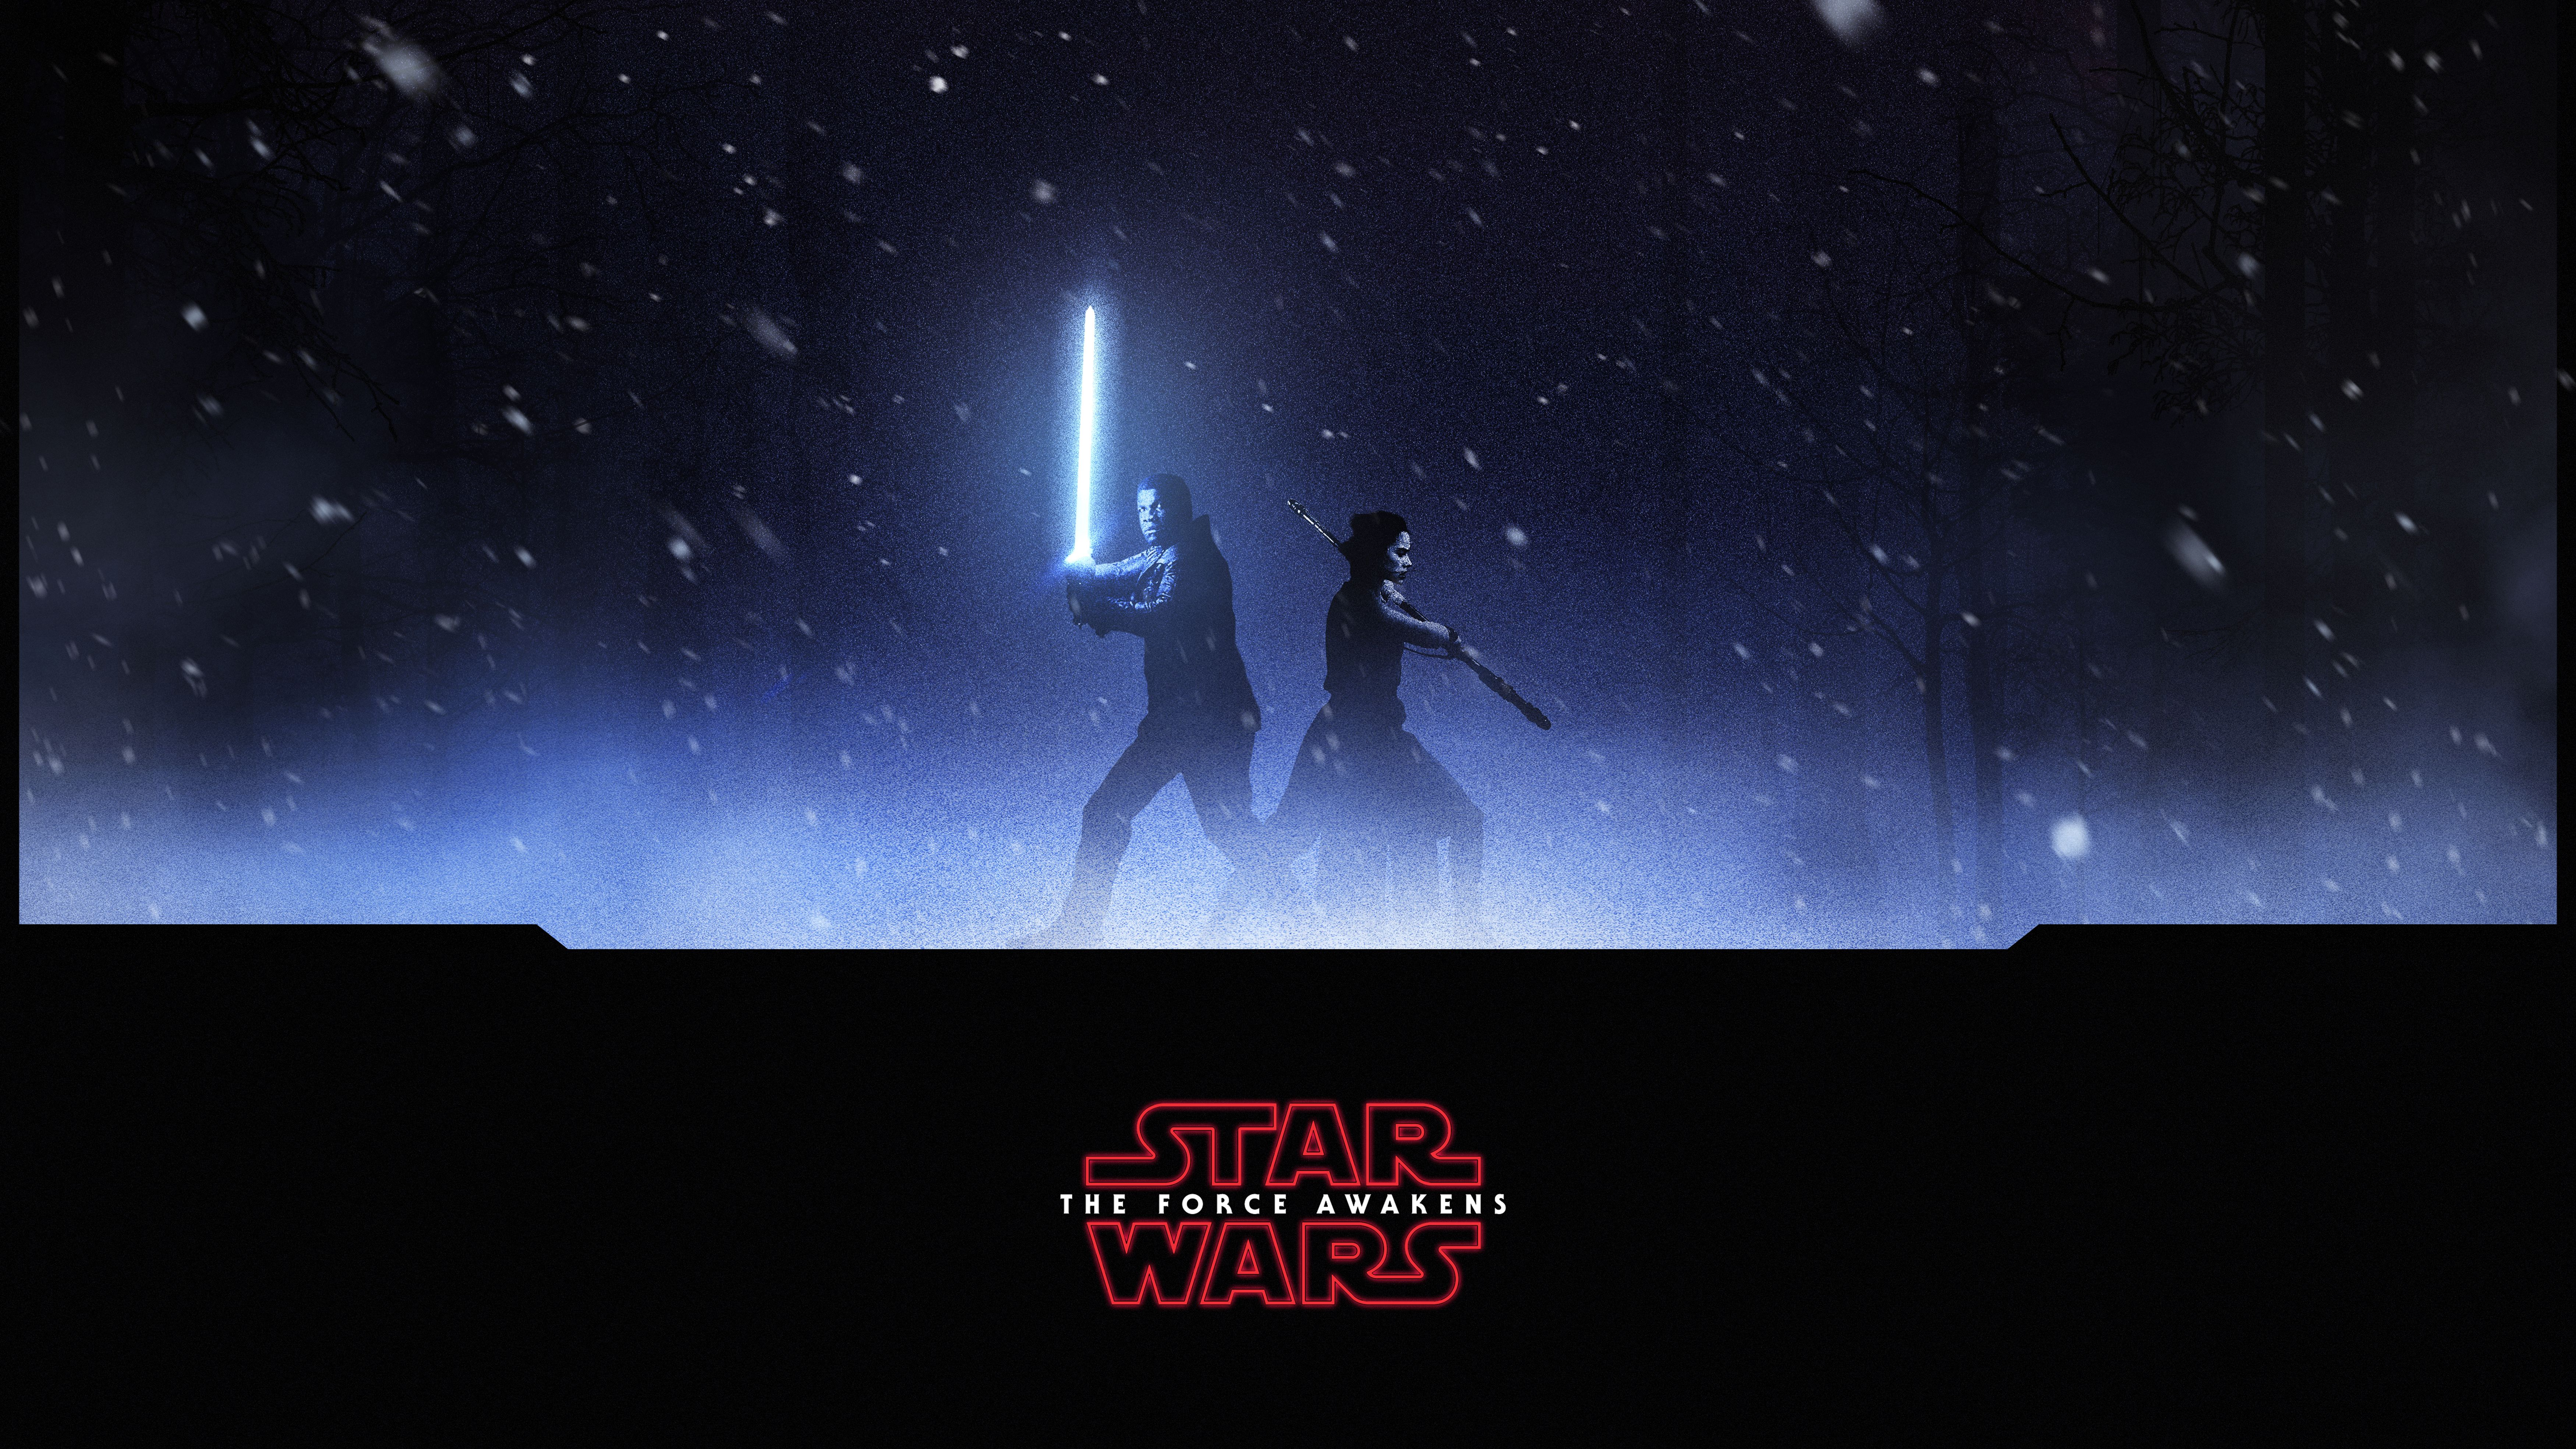 Star Wars The Force Awakens Wallpapers Top Free Star Wars The Force Awakens Backgrounds Wallpaperaccess